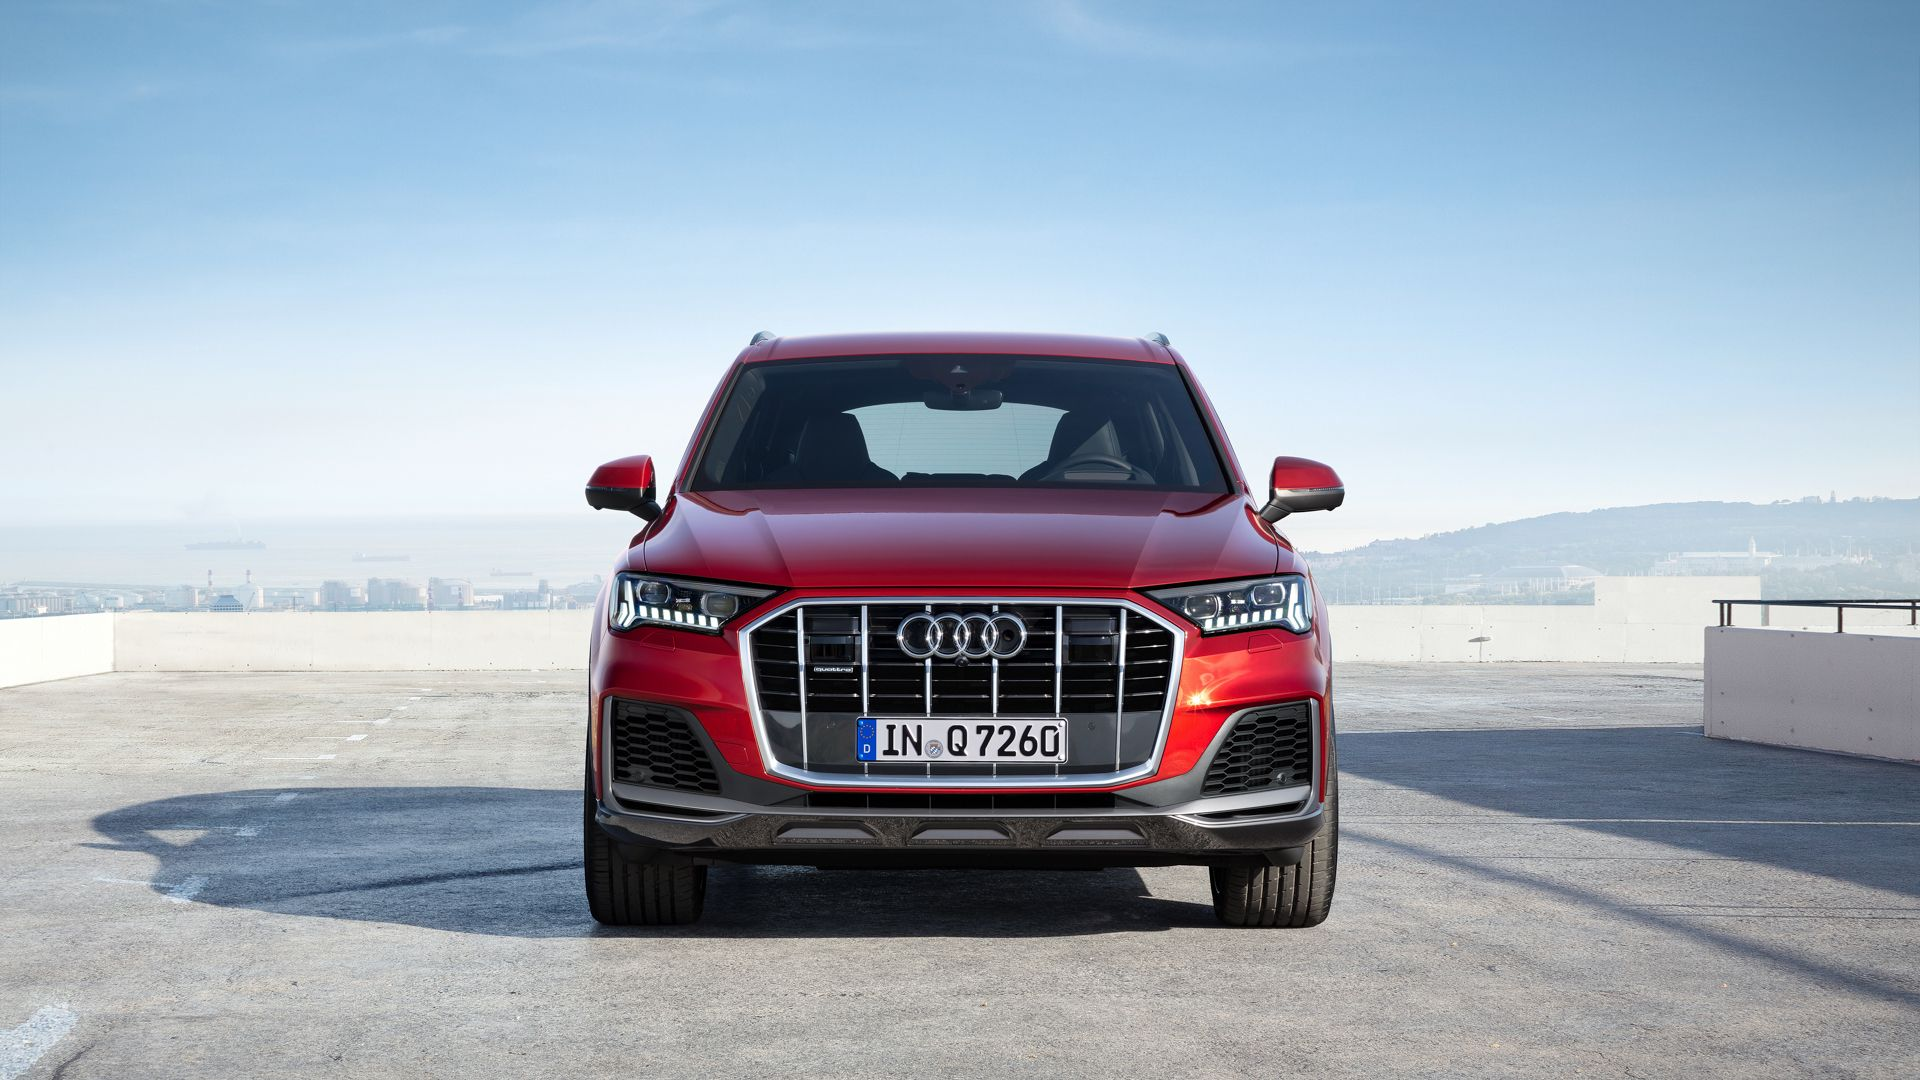 Can The Audi Q7 Facelift Take On The Mercedes Benz Gls Class In 2020 Audi Q7 Audi New Audi Q7